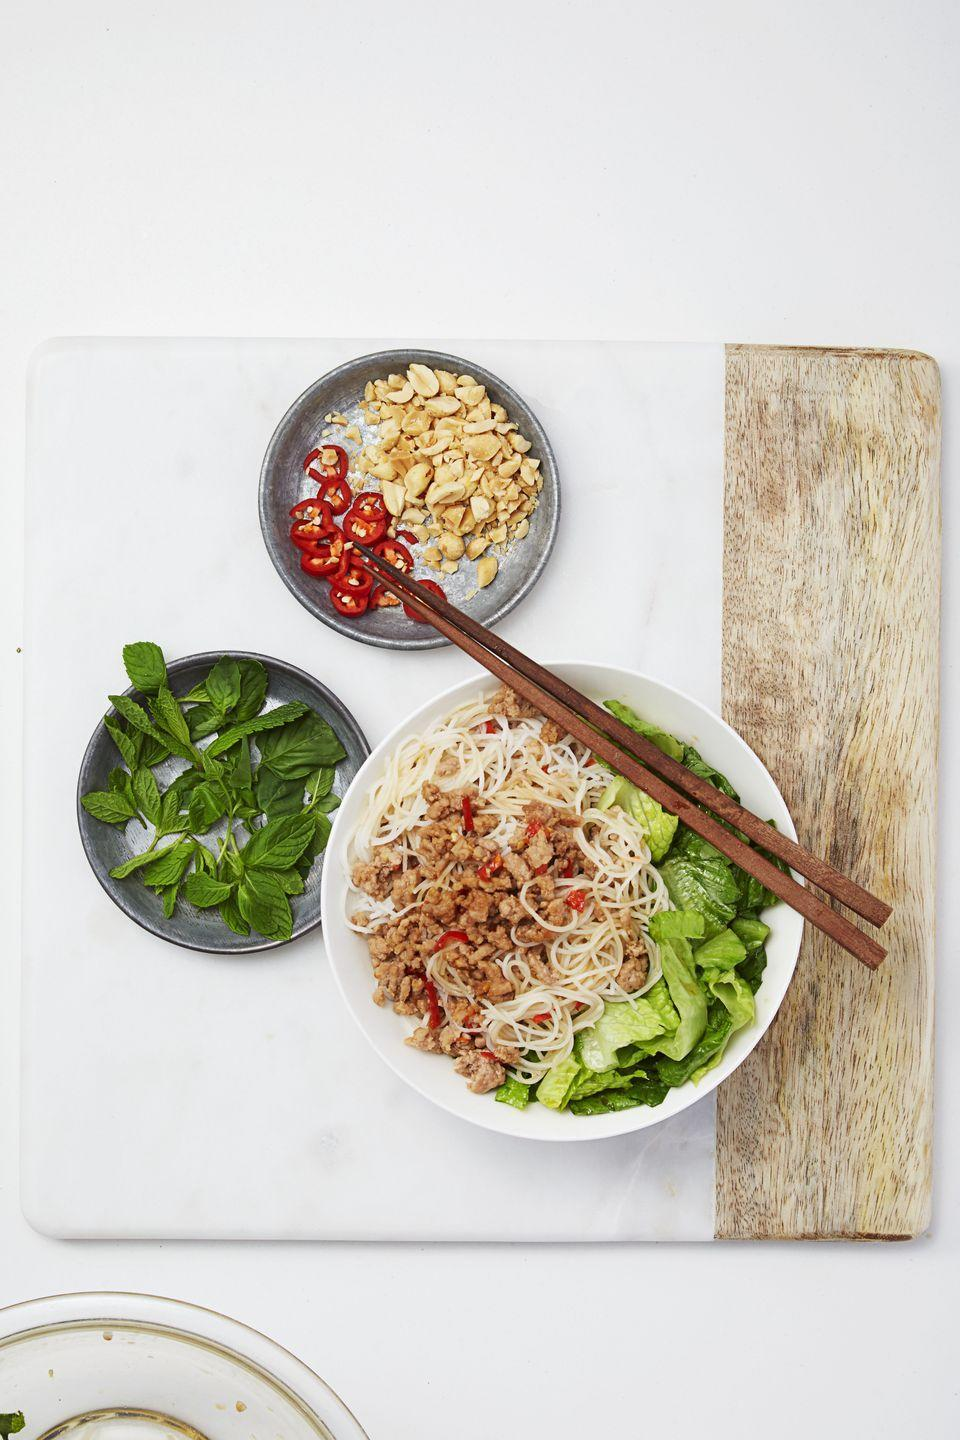 "<p>This salad is extra satisfying, thanks to thin rice noodles (a.k.a. <a href=""https://www.goodhousekeeping.com/food-recipes/cooking/tips/a17291/noodling-around-1101/"" rel=""nofollow noopener"" target=""_blank"" data-ylk=""slk:vermicelli"" class=""link rapid-noclick-resp"">vermicelli</a>) that cook quickly and absorb sauce easily. You may want to call dibs on the leftovers, for lunch tomorrow. </p><p><a href=""https://www.goodhousekeeping.com/food-recipes/a32684/vietnamese-noodle-salad/"" rel=""nofollow noopener"" target=""_blank"" data-ylk=""slk:Get the recipe for Vietnamese Noodle Salad »"" class=""link rapid-noclick-resp""><em>Get the recipe for Vietnamese Noodle Salad »</em></a></p>"